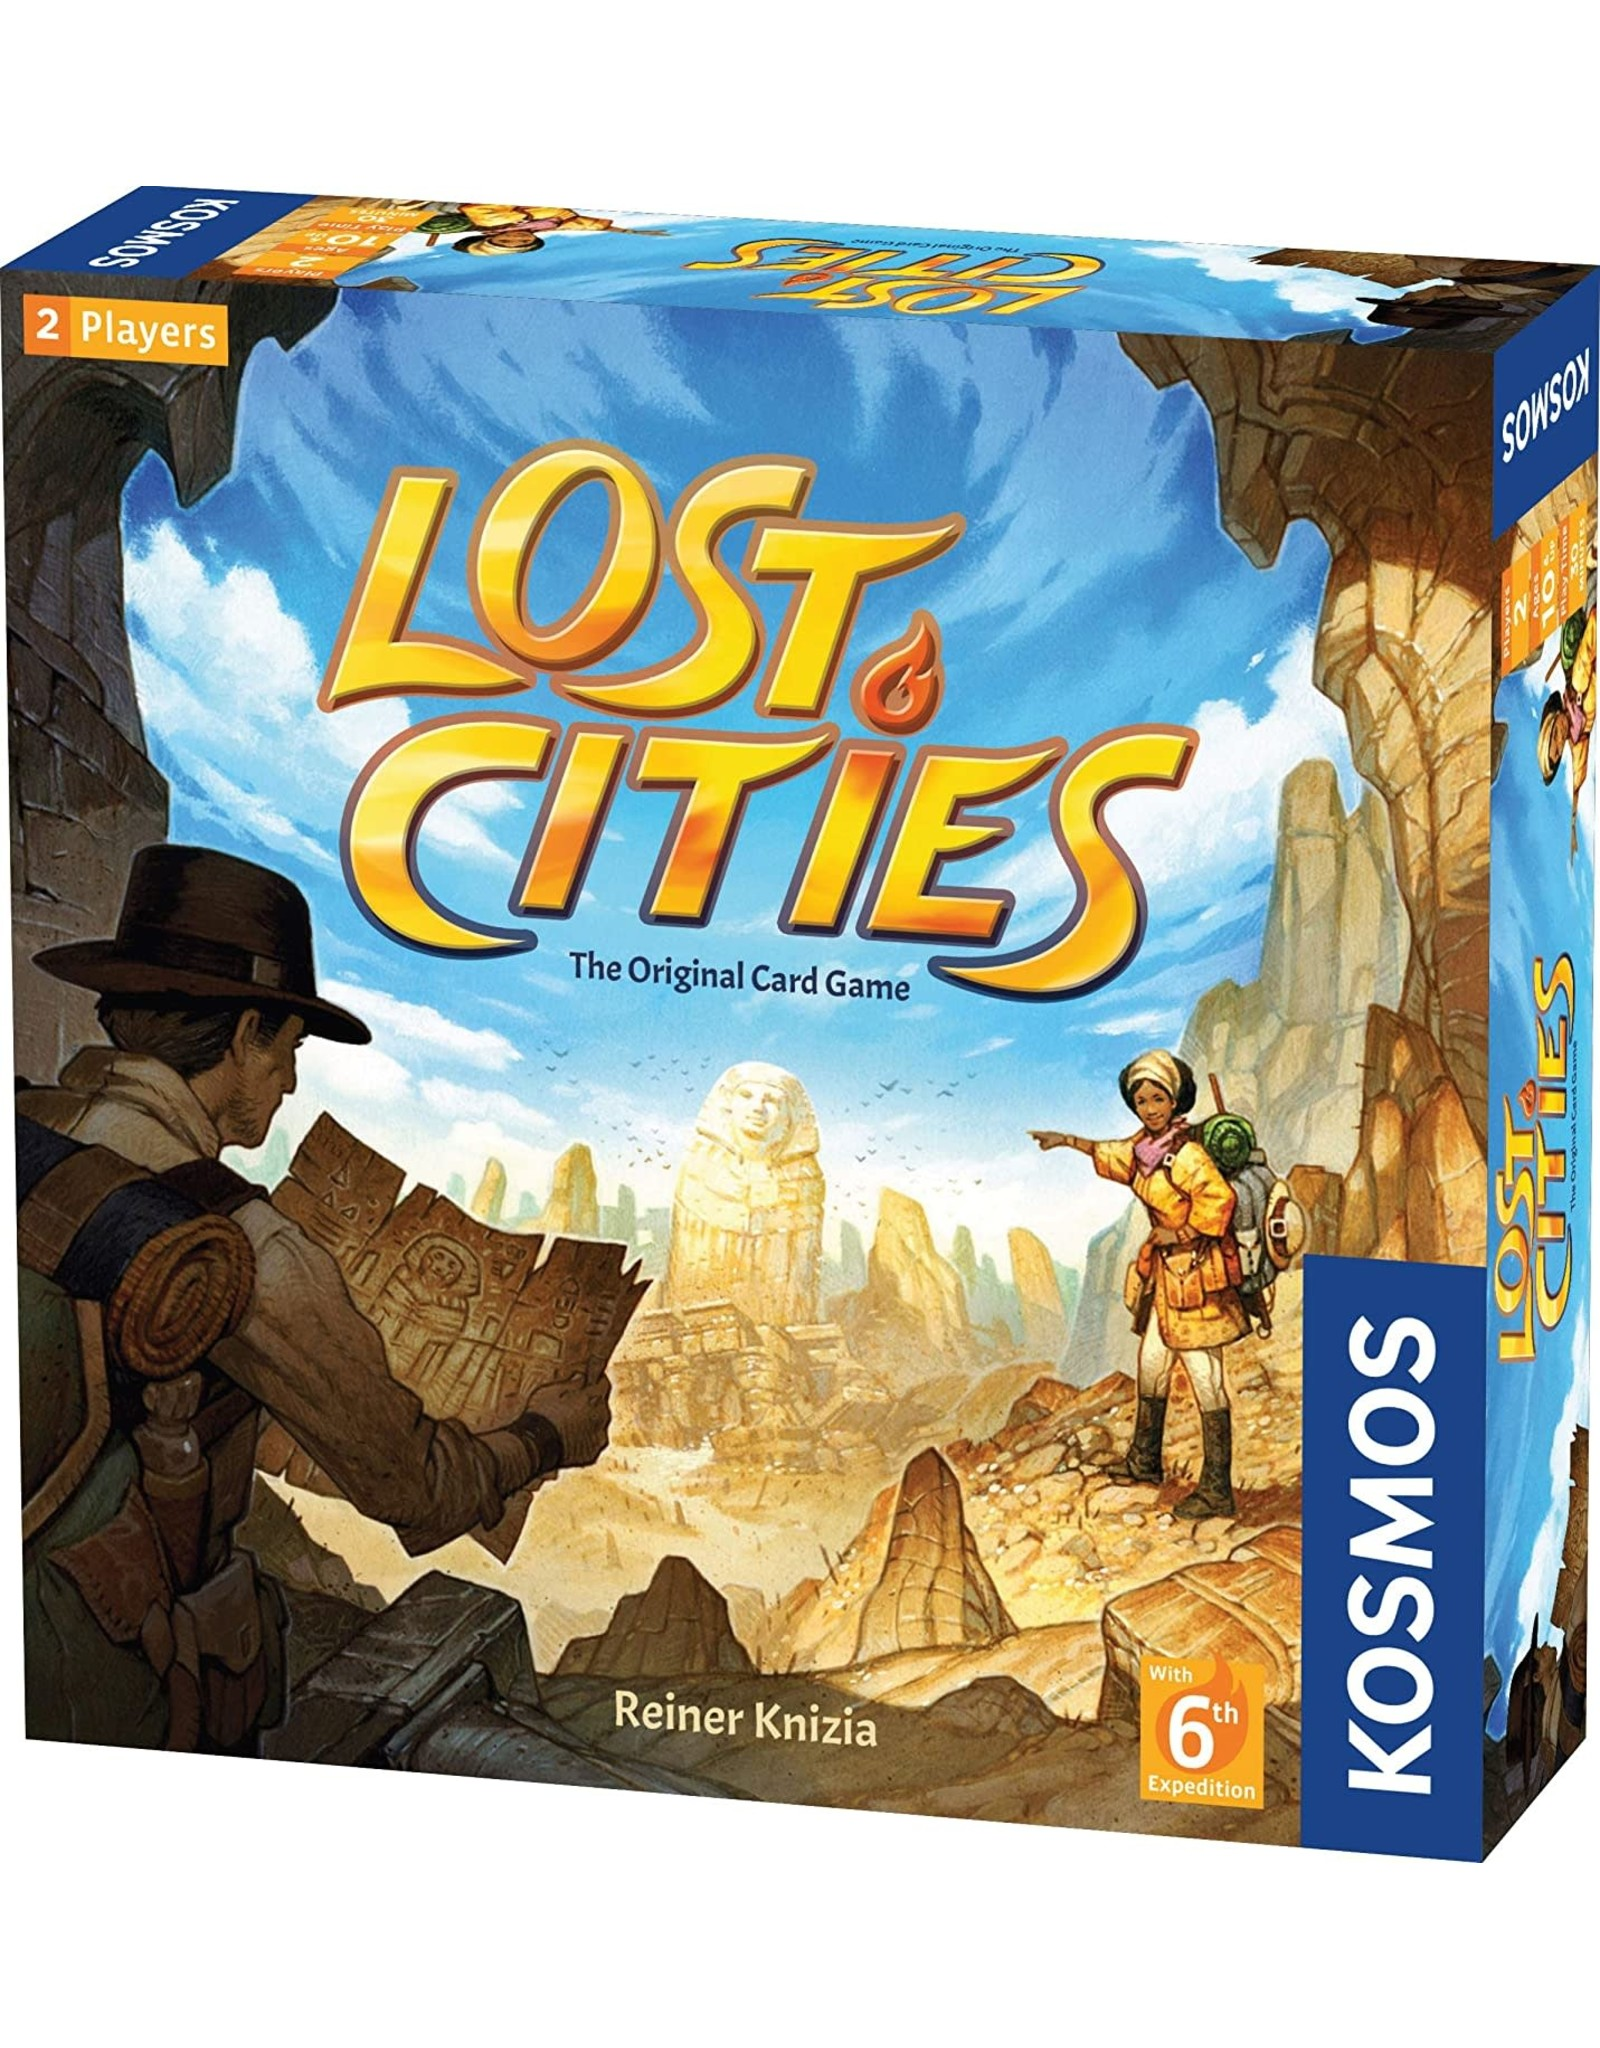 Kosmos Lost Cities Card Game with 6th Expedition